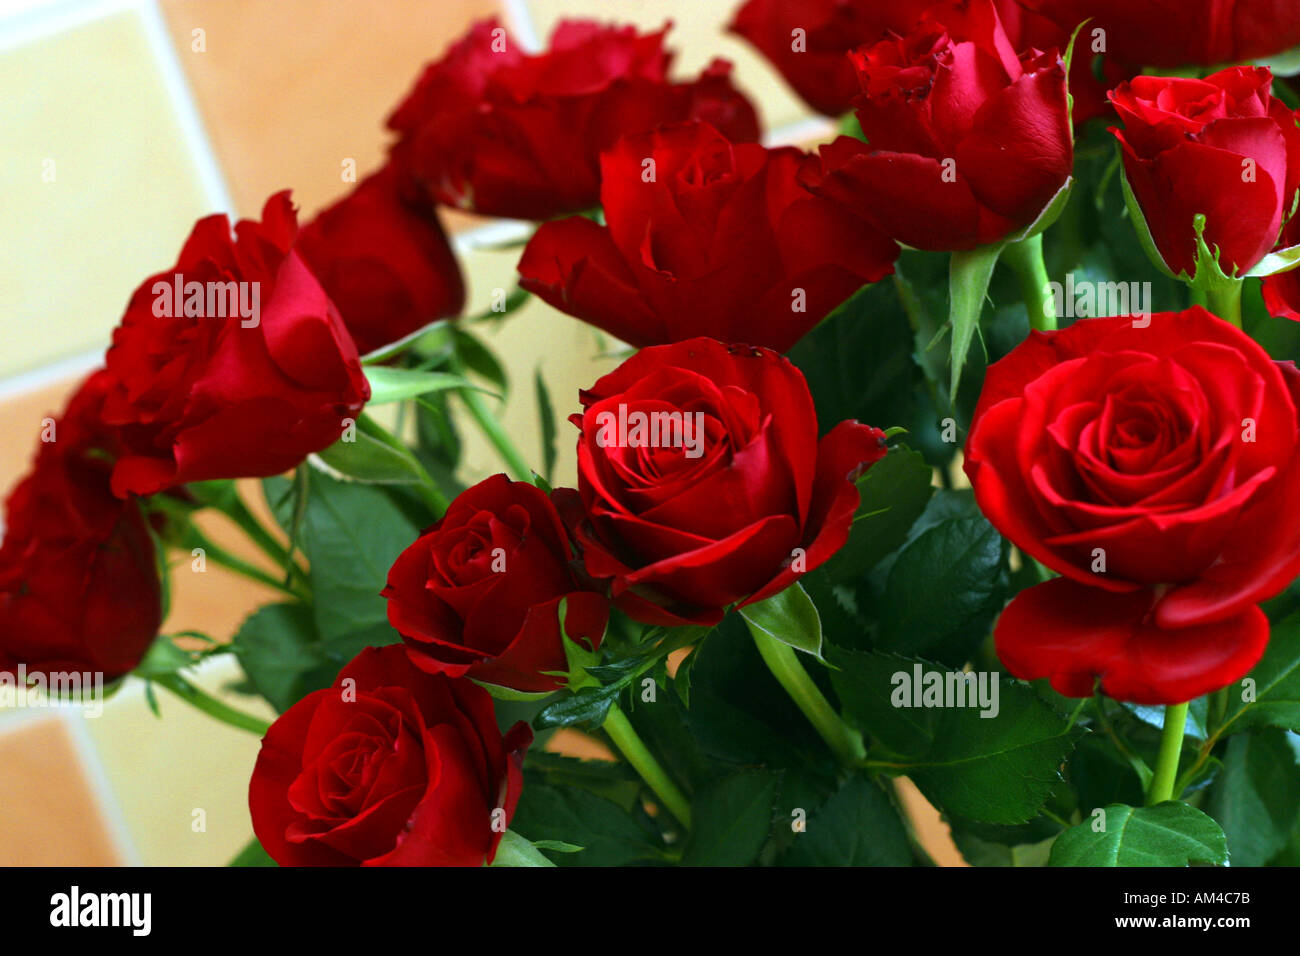 Bunch of red roses symbol of love stock photo royalty free image bunch of red roses symbol of love buycottarizona